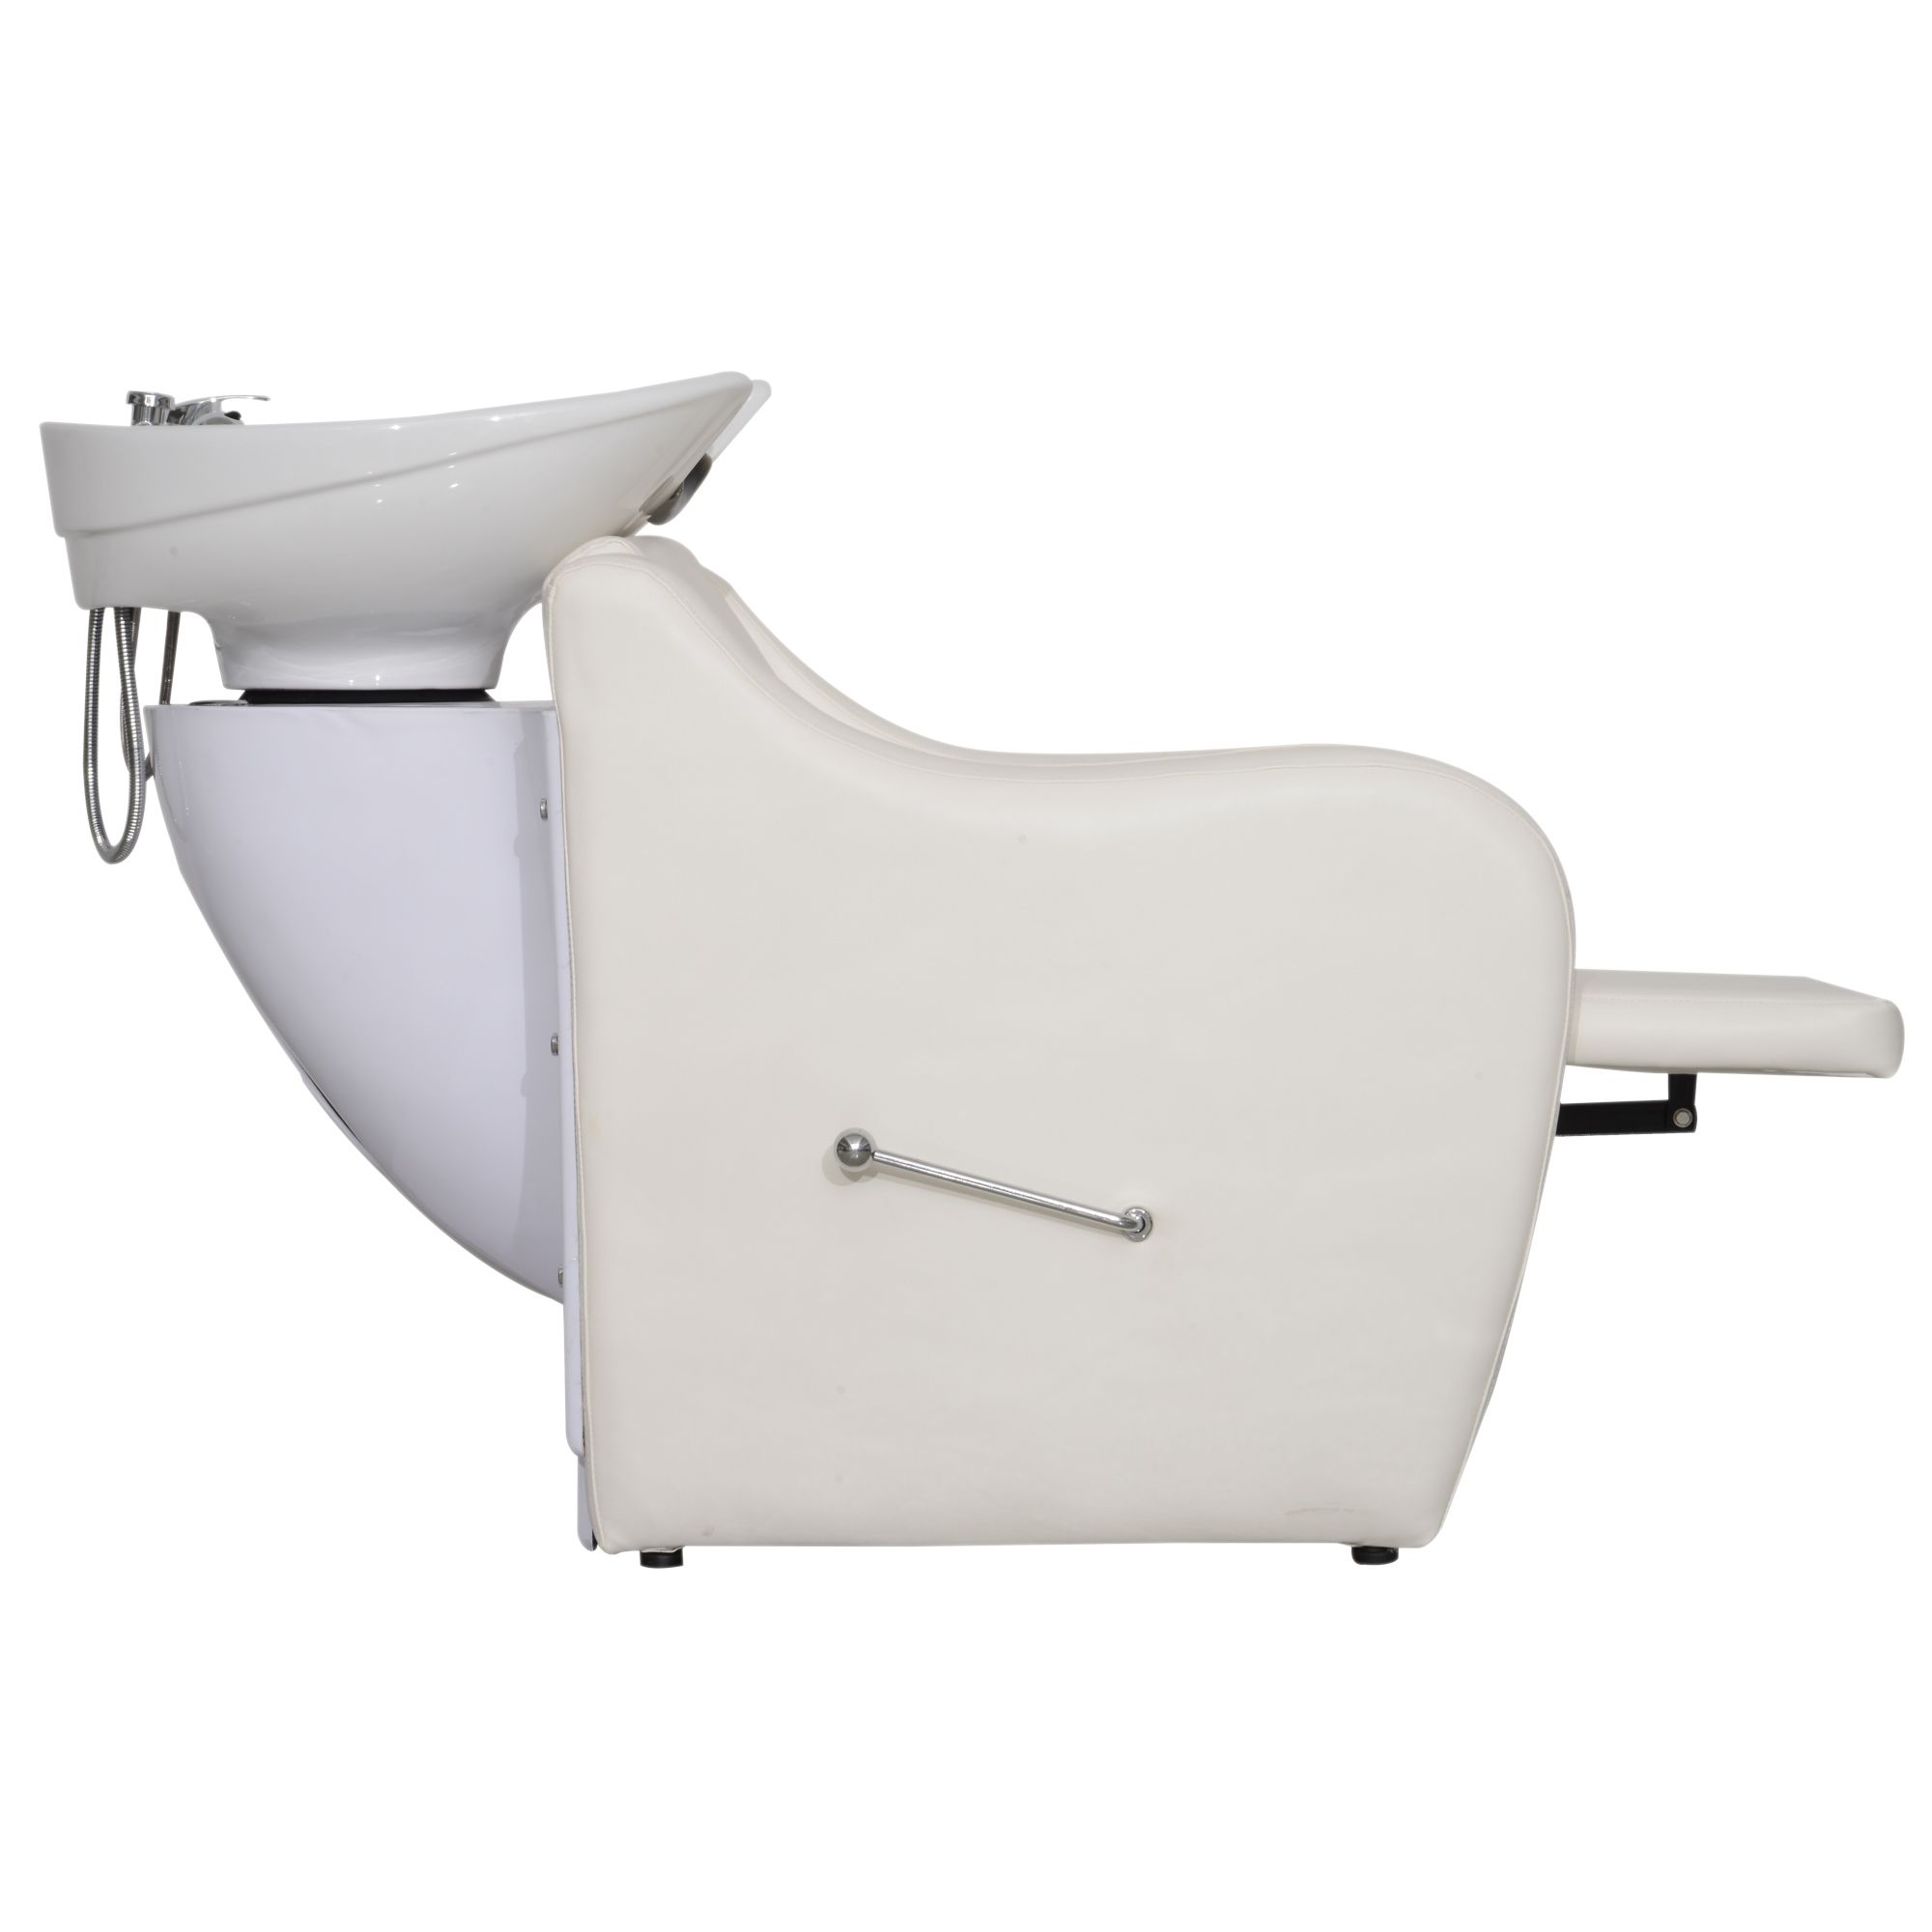 backwash chairs for sale ergonomic chair pillow ceramic shampoo bowl sink station spa salon